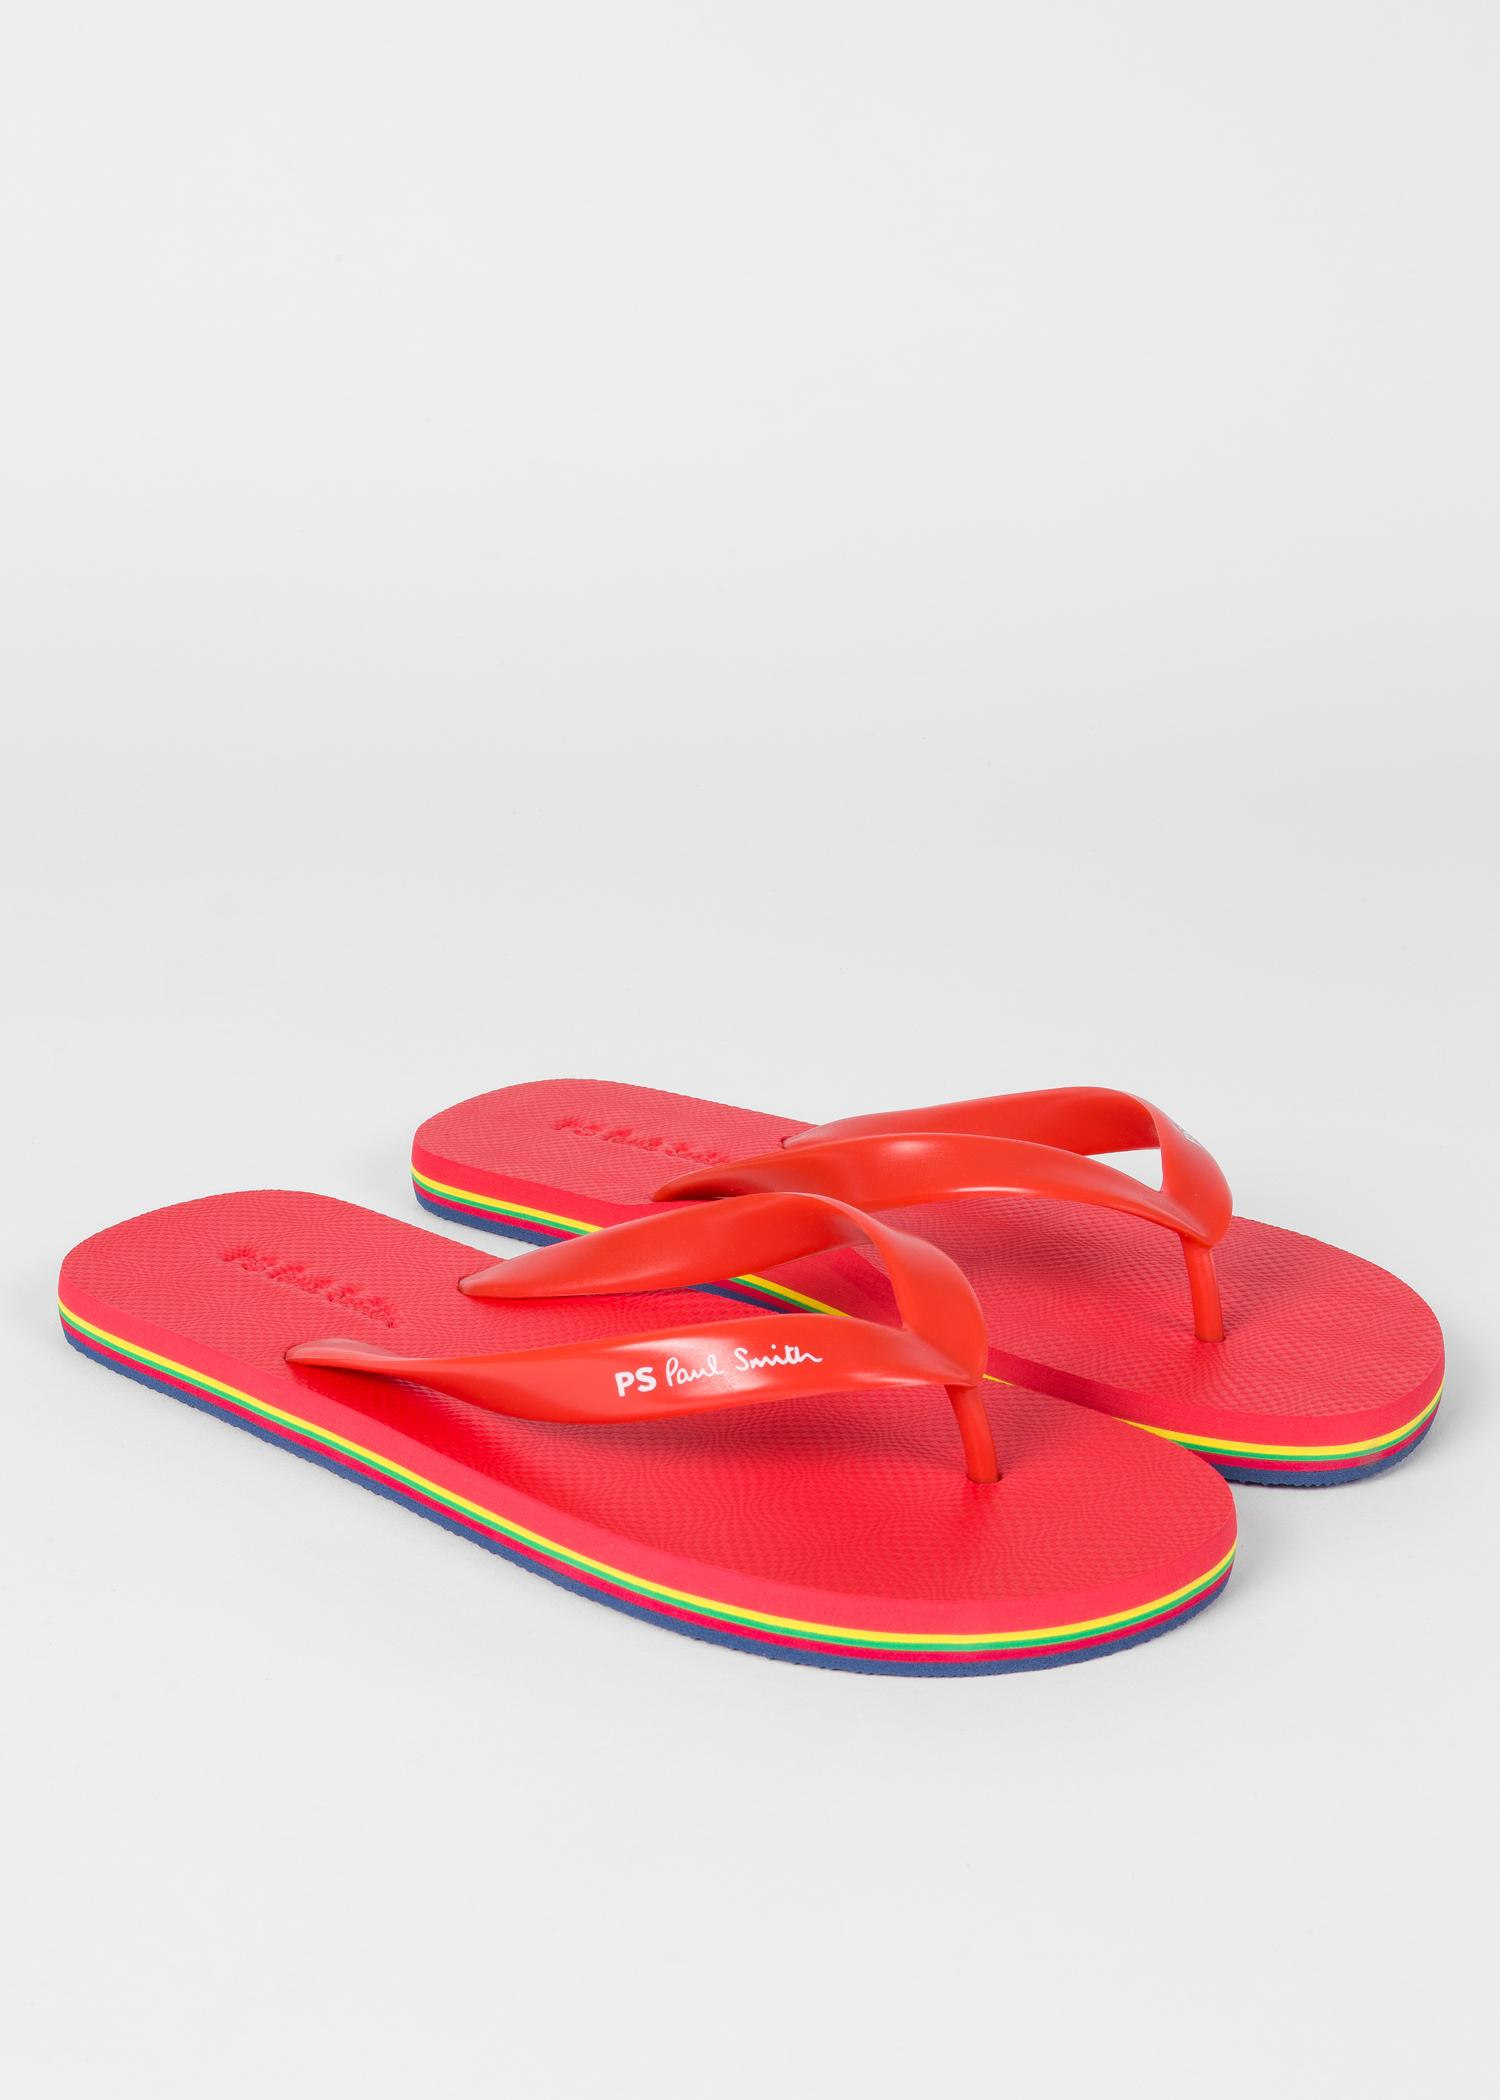 Paul Smith Rubber Red Dale Flip Flops With Multi -2414